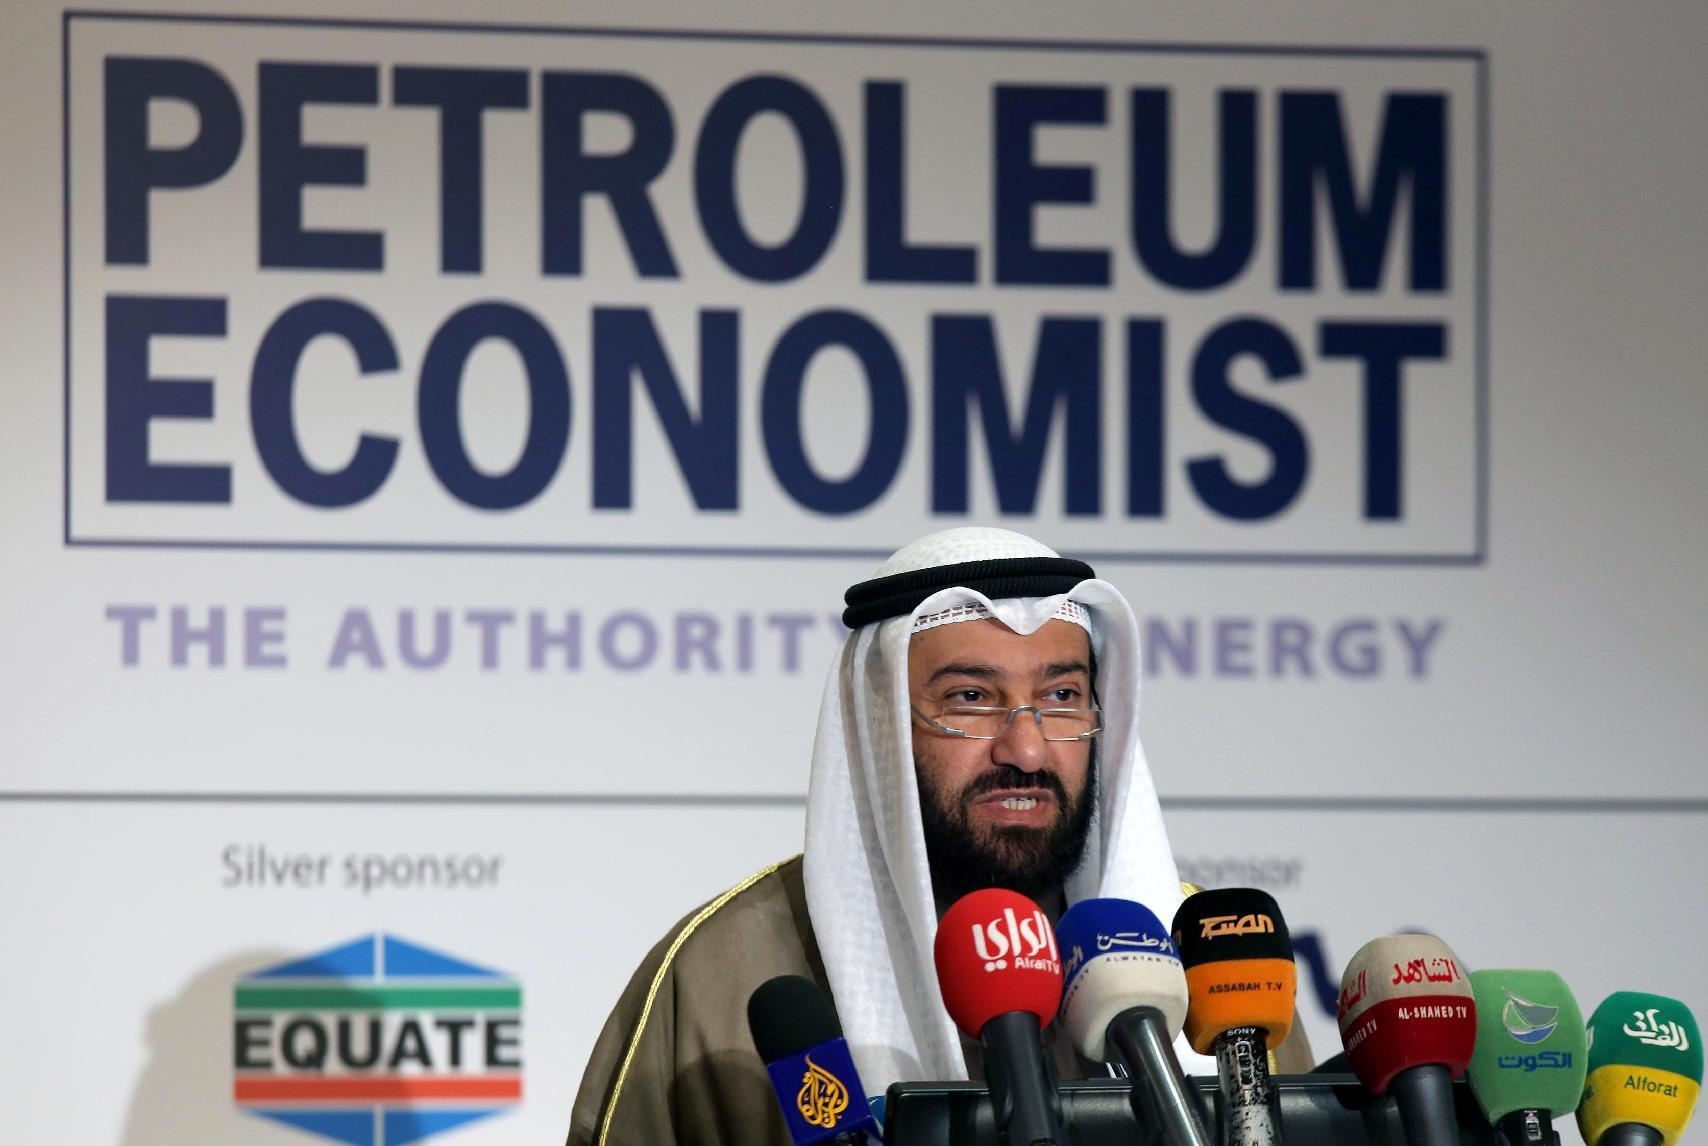 Kuwaiti Oil Minister, Ali al-Omair, speaks during a forum in Kuwait City, on January 21, 2015